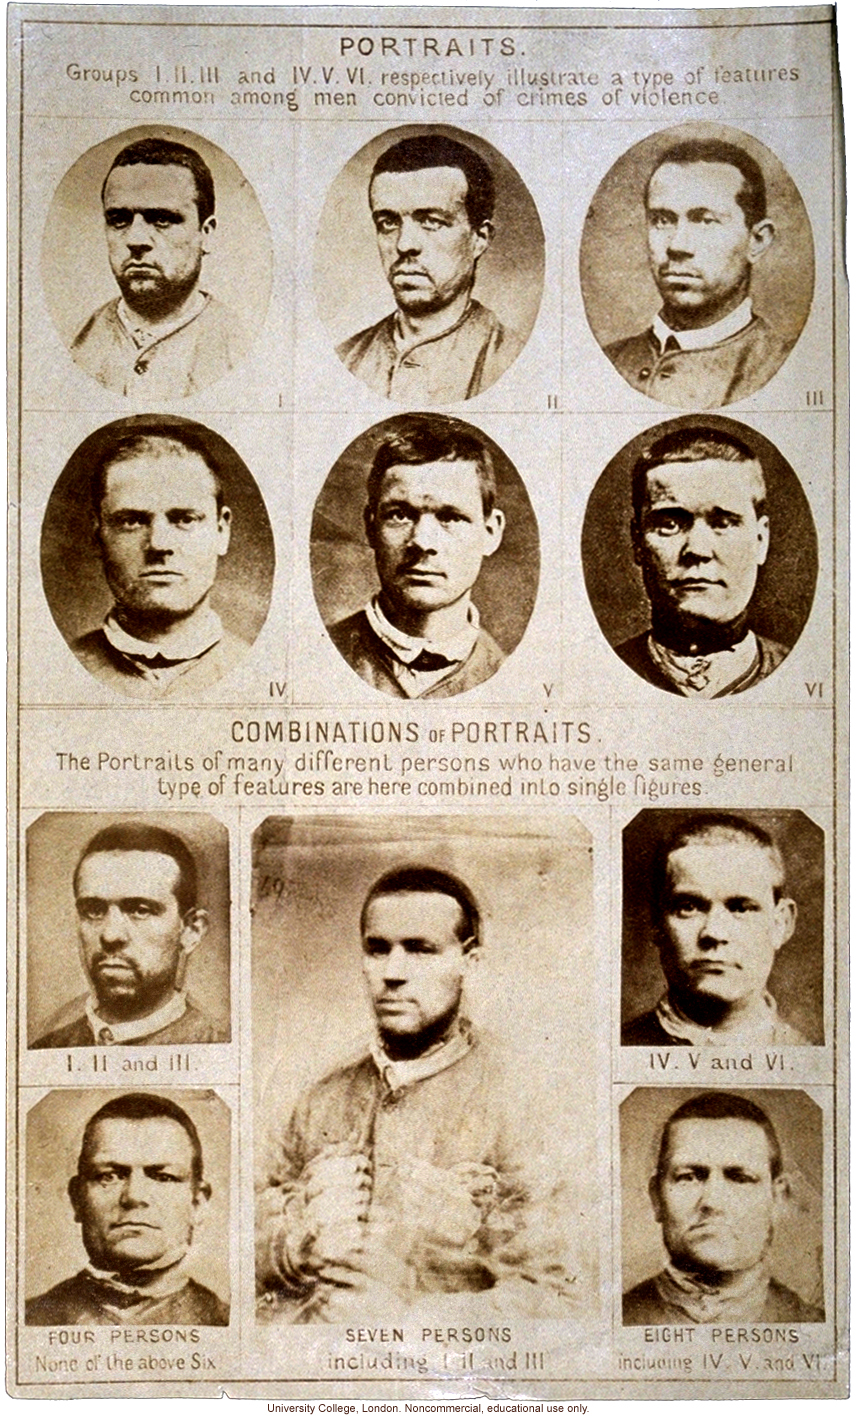 Composite portraits showing &quote;features common among men convicted of crimes of violence,&quote; by Francis Galton, with original photographs